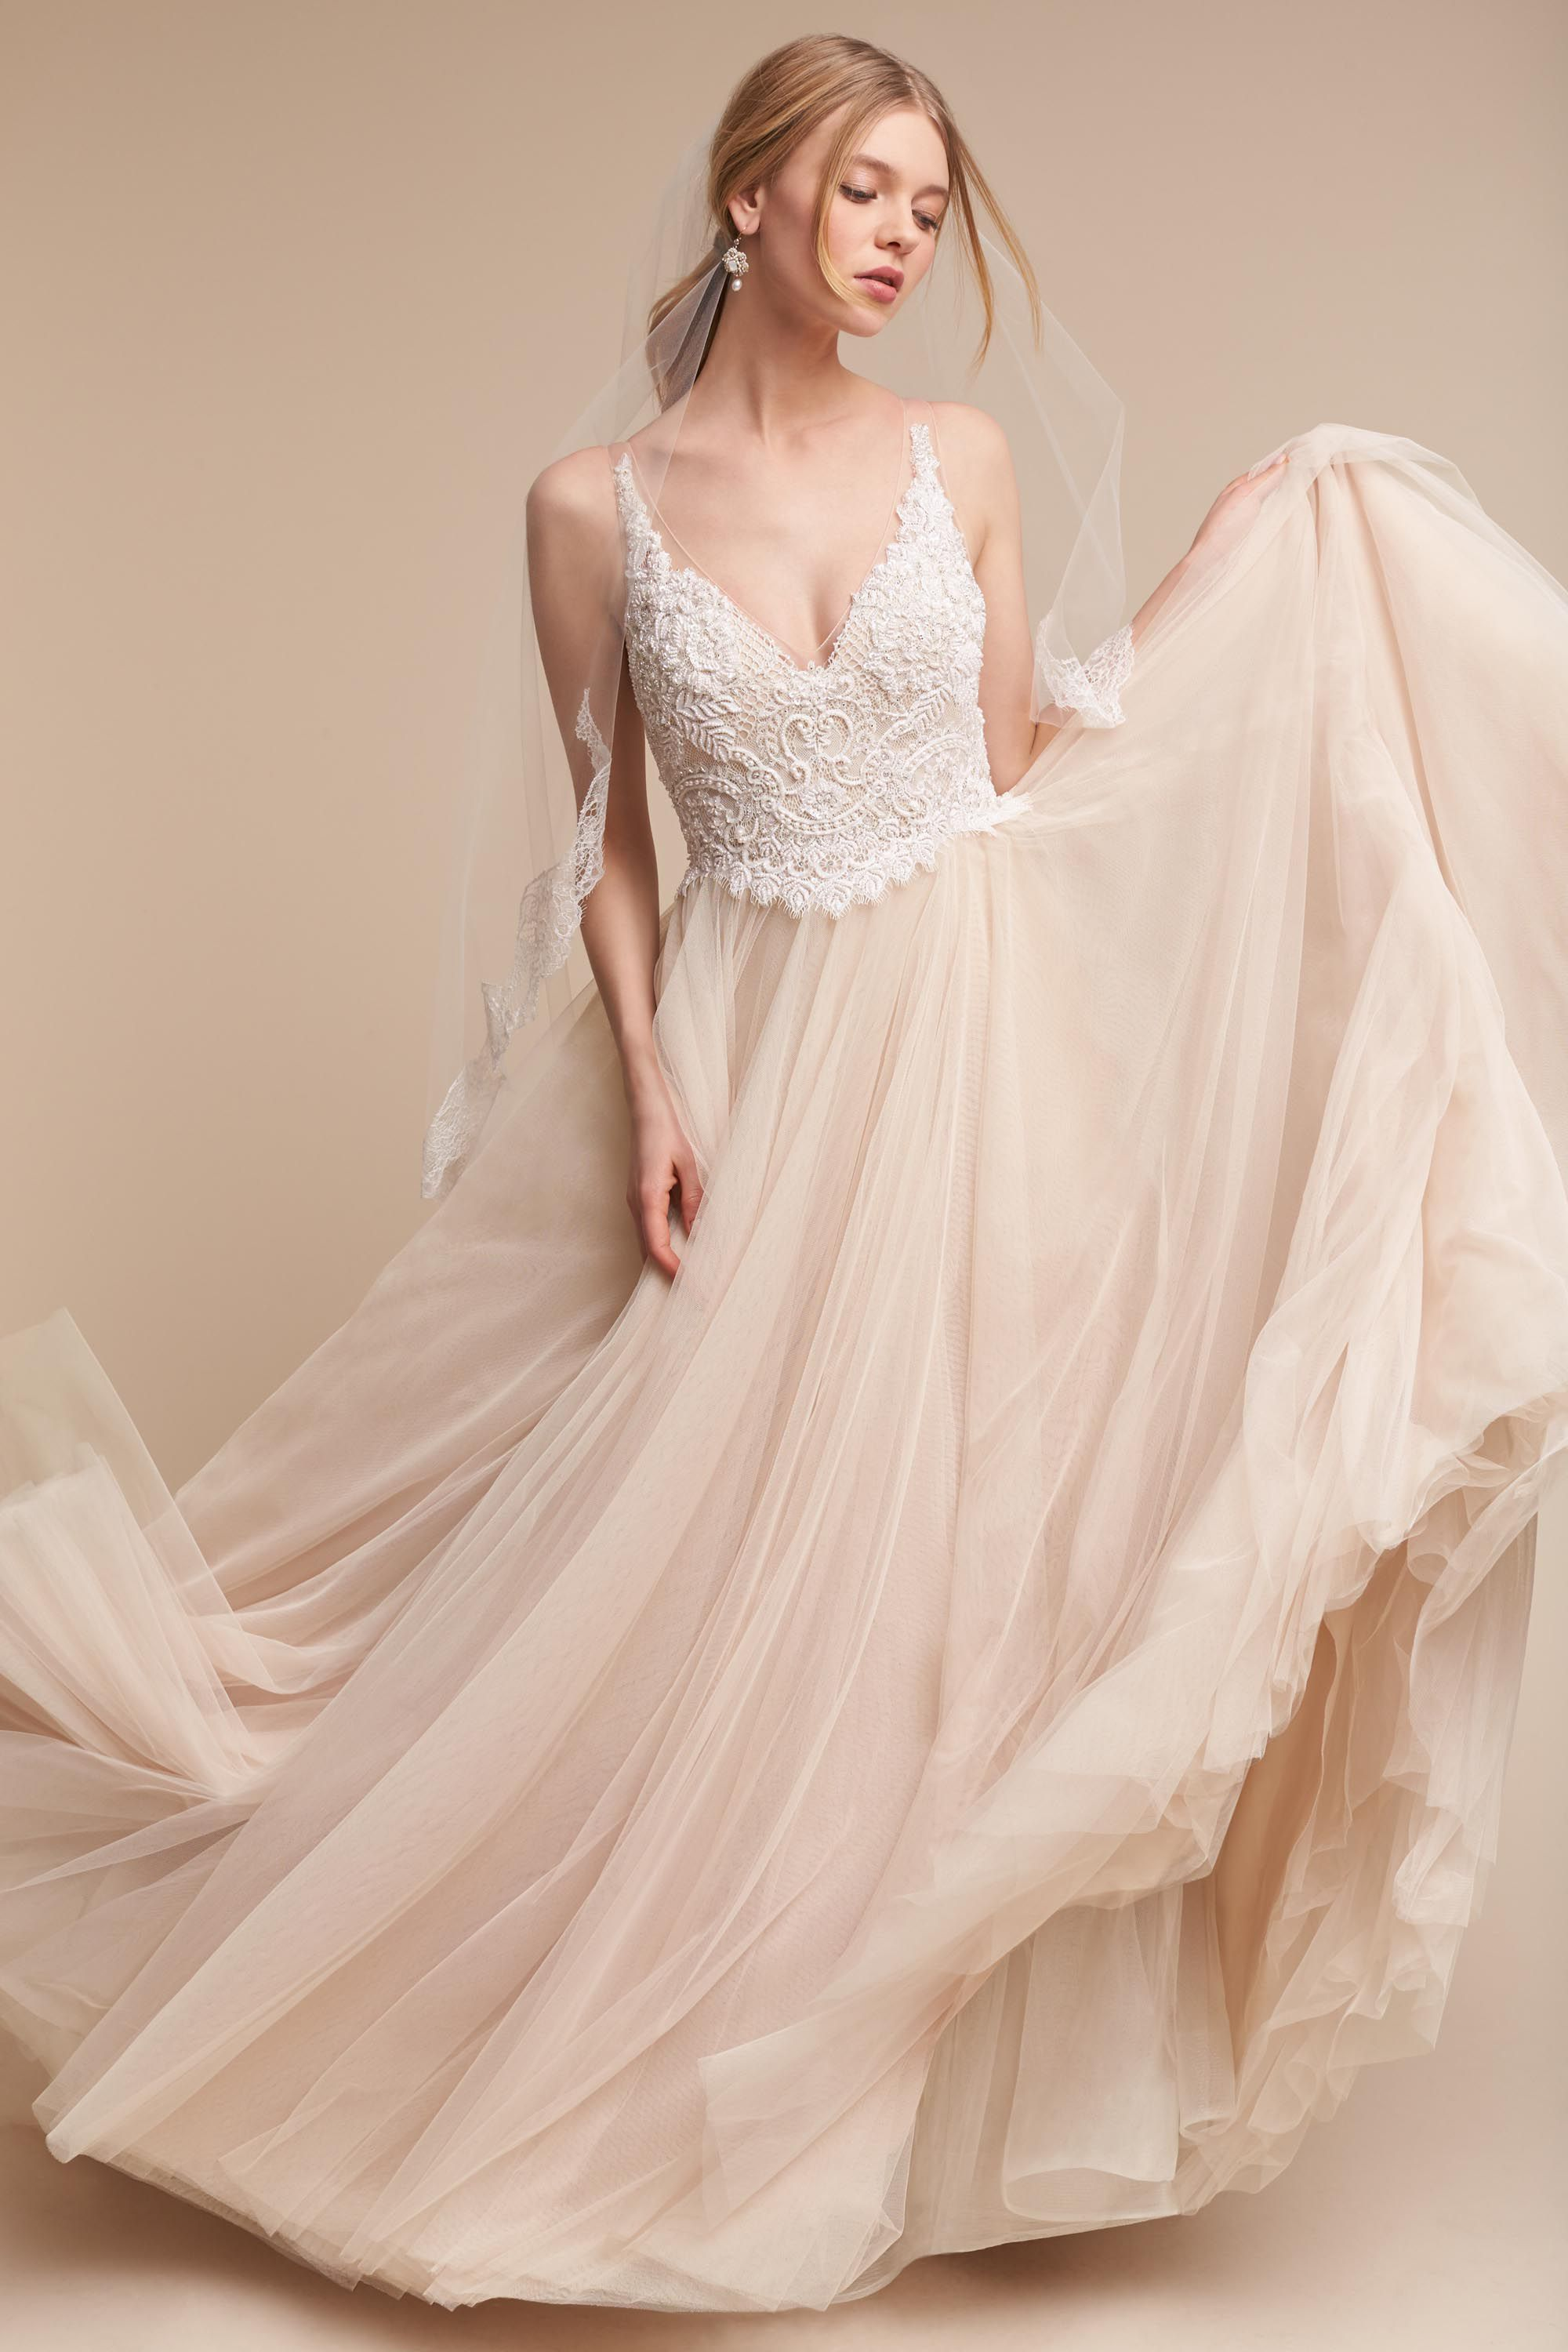 Wedding Weeding Dresses wedding dresses vintage simple gowns bhldn chantal gown gown